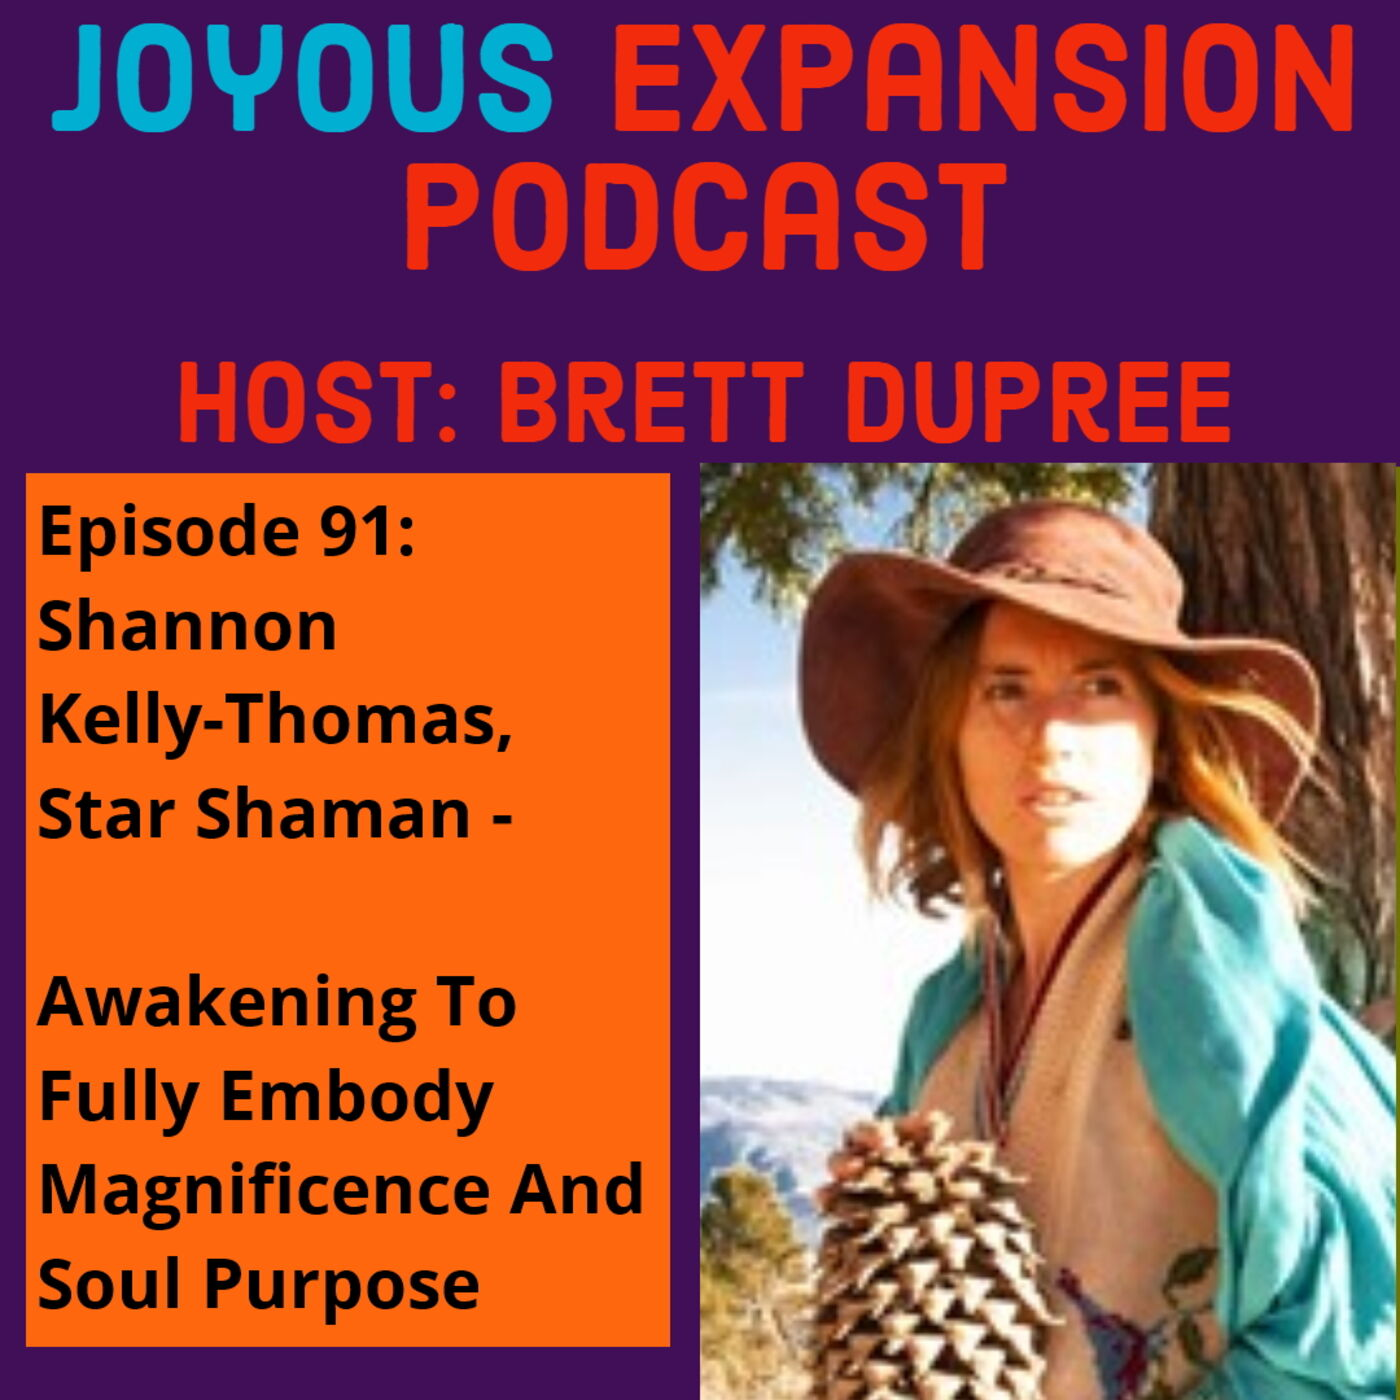 Joyous Expansion #91 - Shannon Kelly-Thomas - Awakening To Fully Embody Magnificence And Soul Purpose